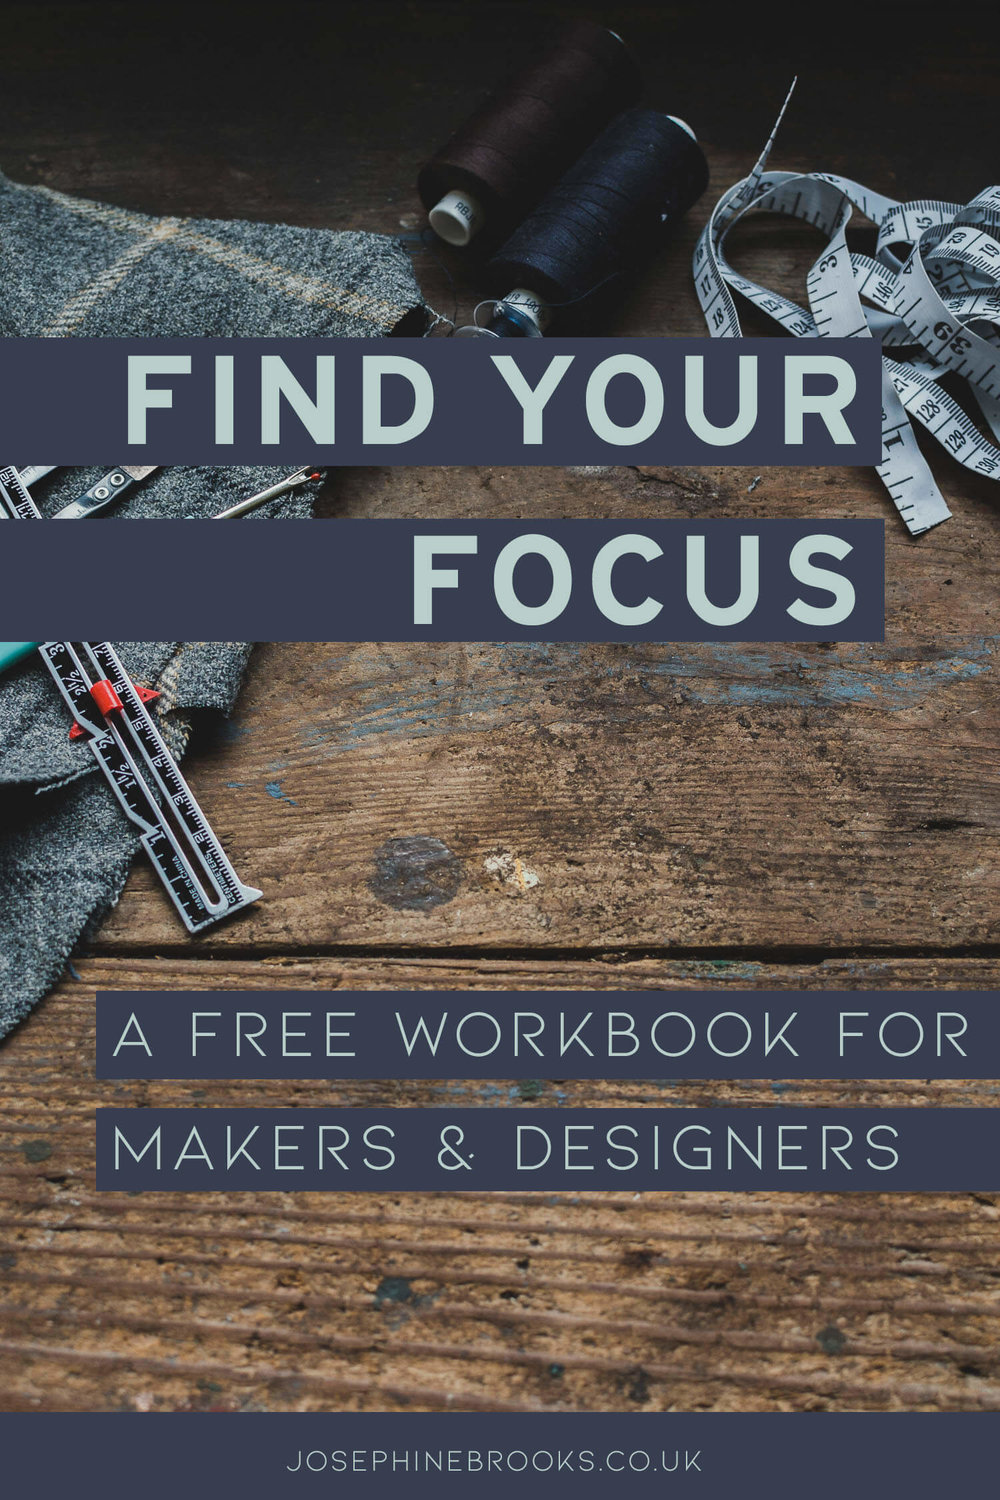 How to find your focus in your creative business, overcome overwhelm in creative business, what to prioritise in my handmade business, focus for makers and designers, Creative business workstreams